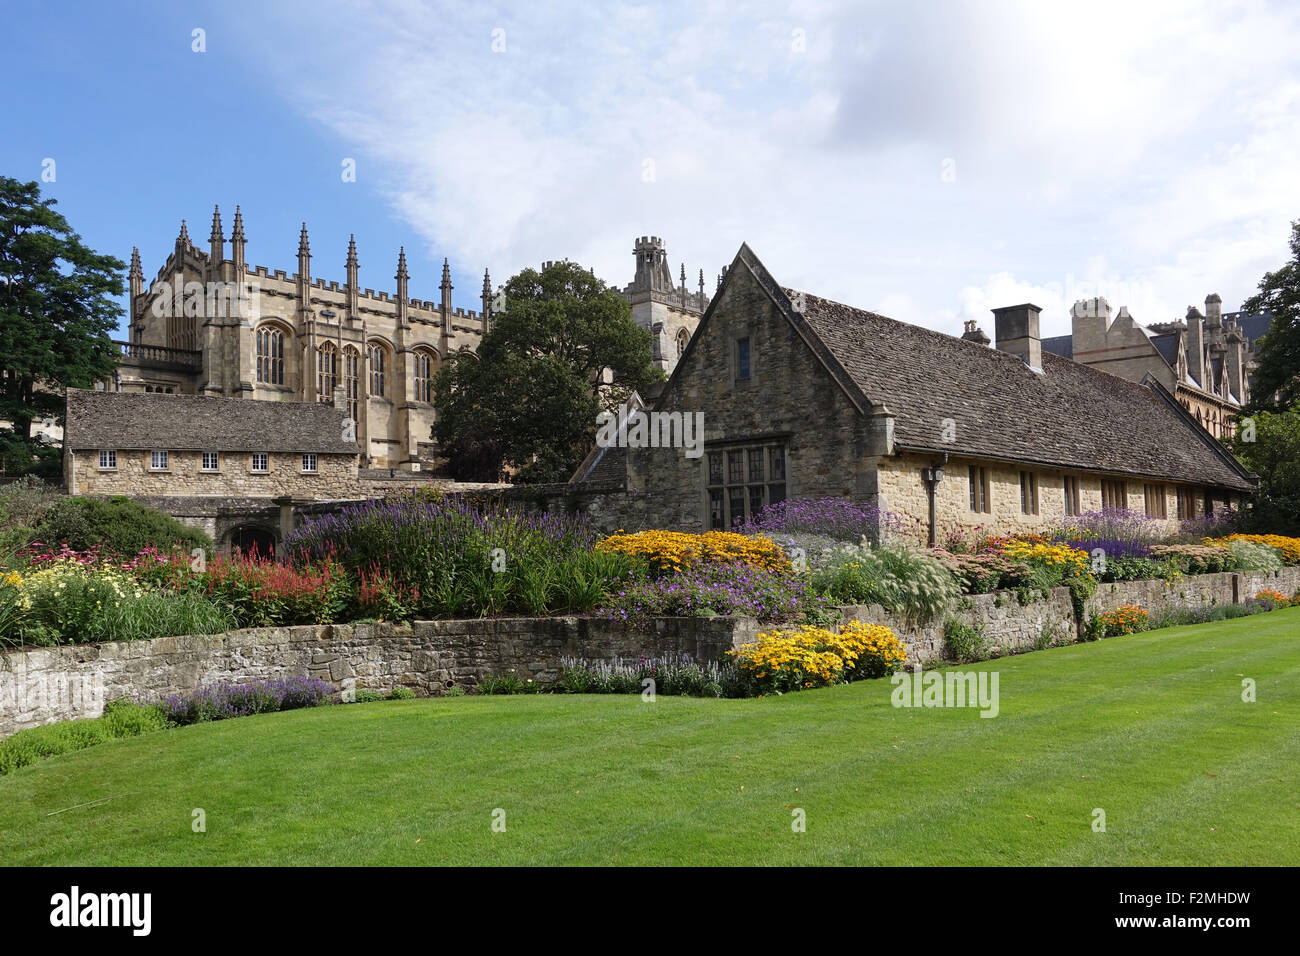 Christ Church Memorial Garden Oxford -1 - Stock Image